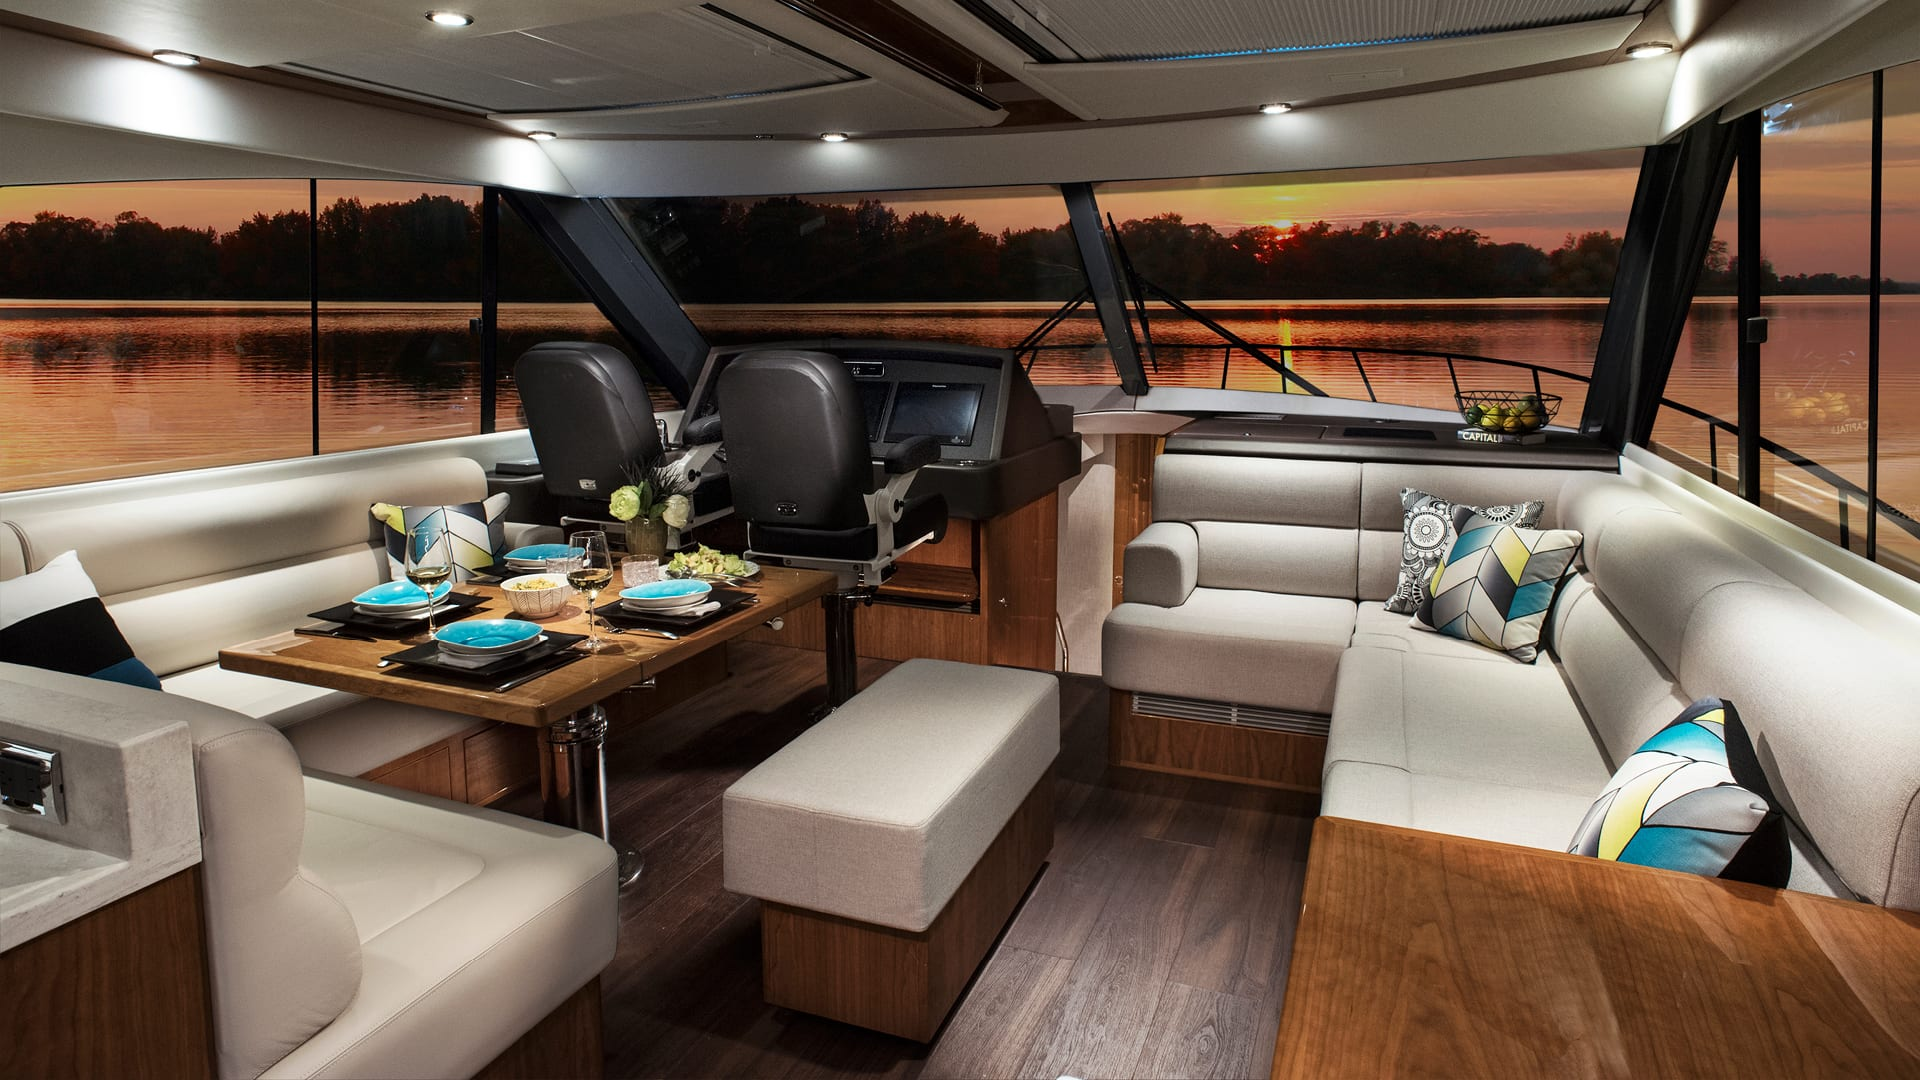 Riviera 575 SUV Saloon – Gloss Walnut Timber Finish